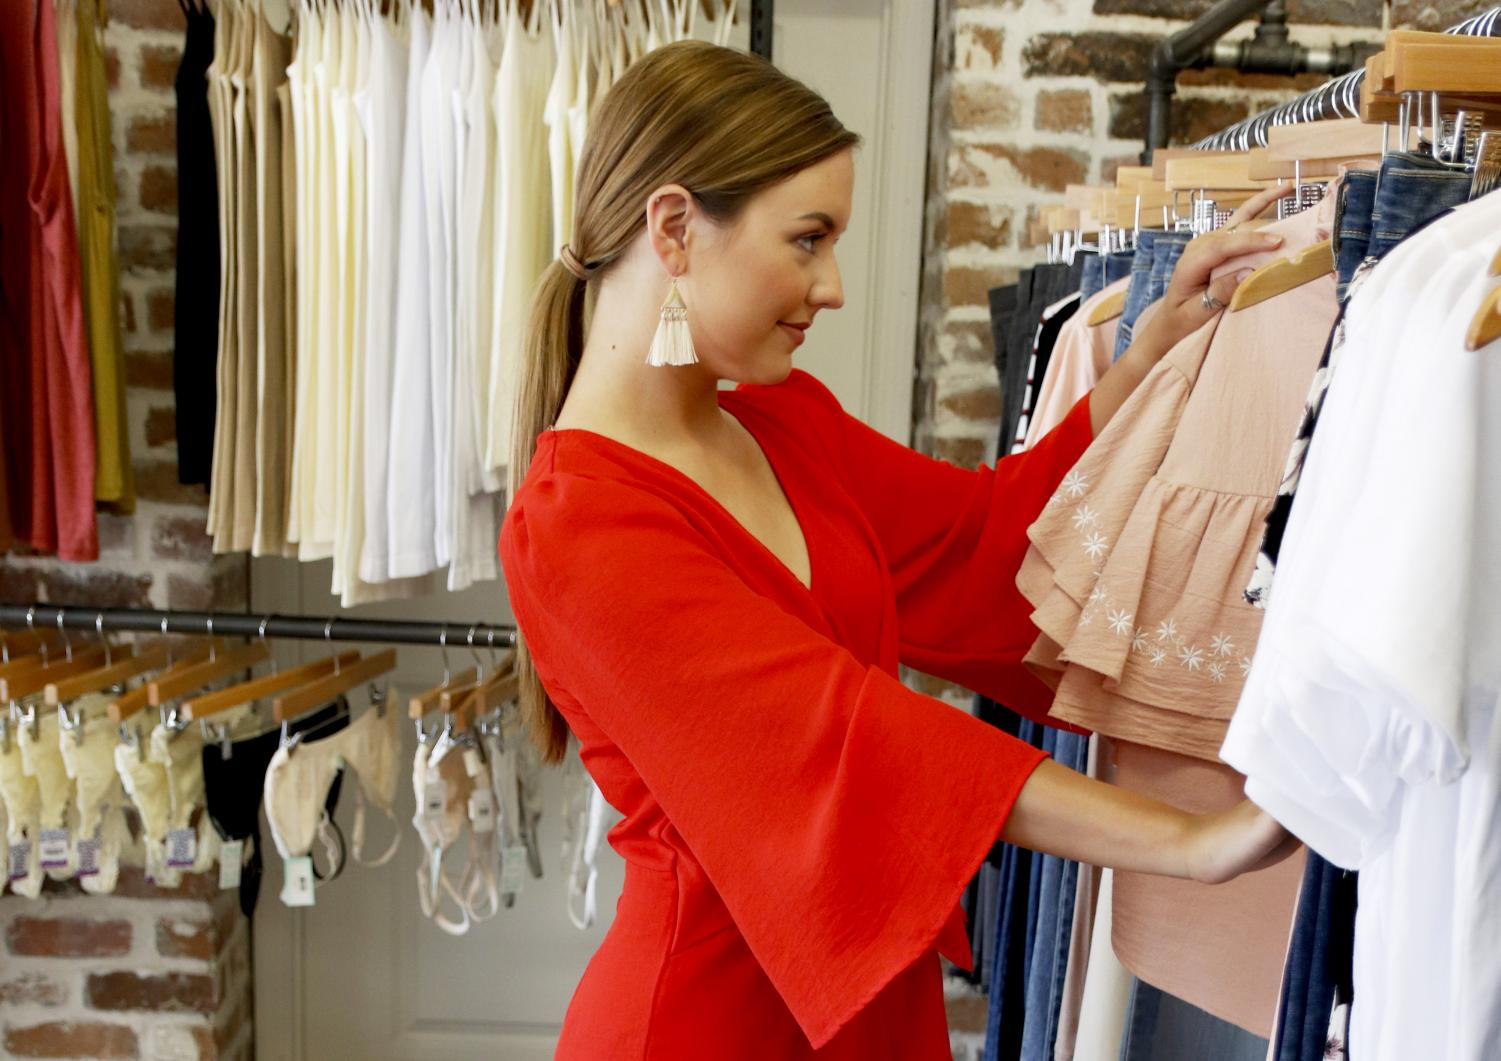 Miss Southeastern Louisiana University models a romper from Imagine Boutique as she looks through their clothing racks. Throughout Hammond are multiple boutiques preparing for tailgate season.